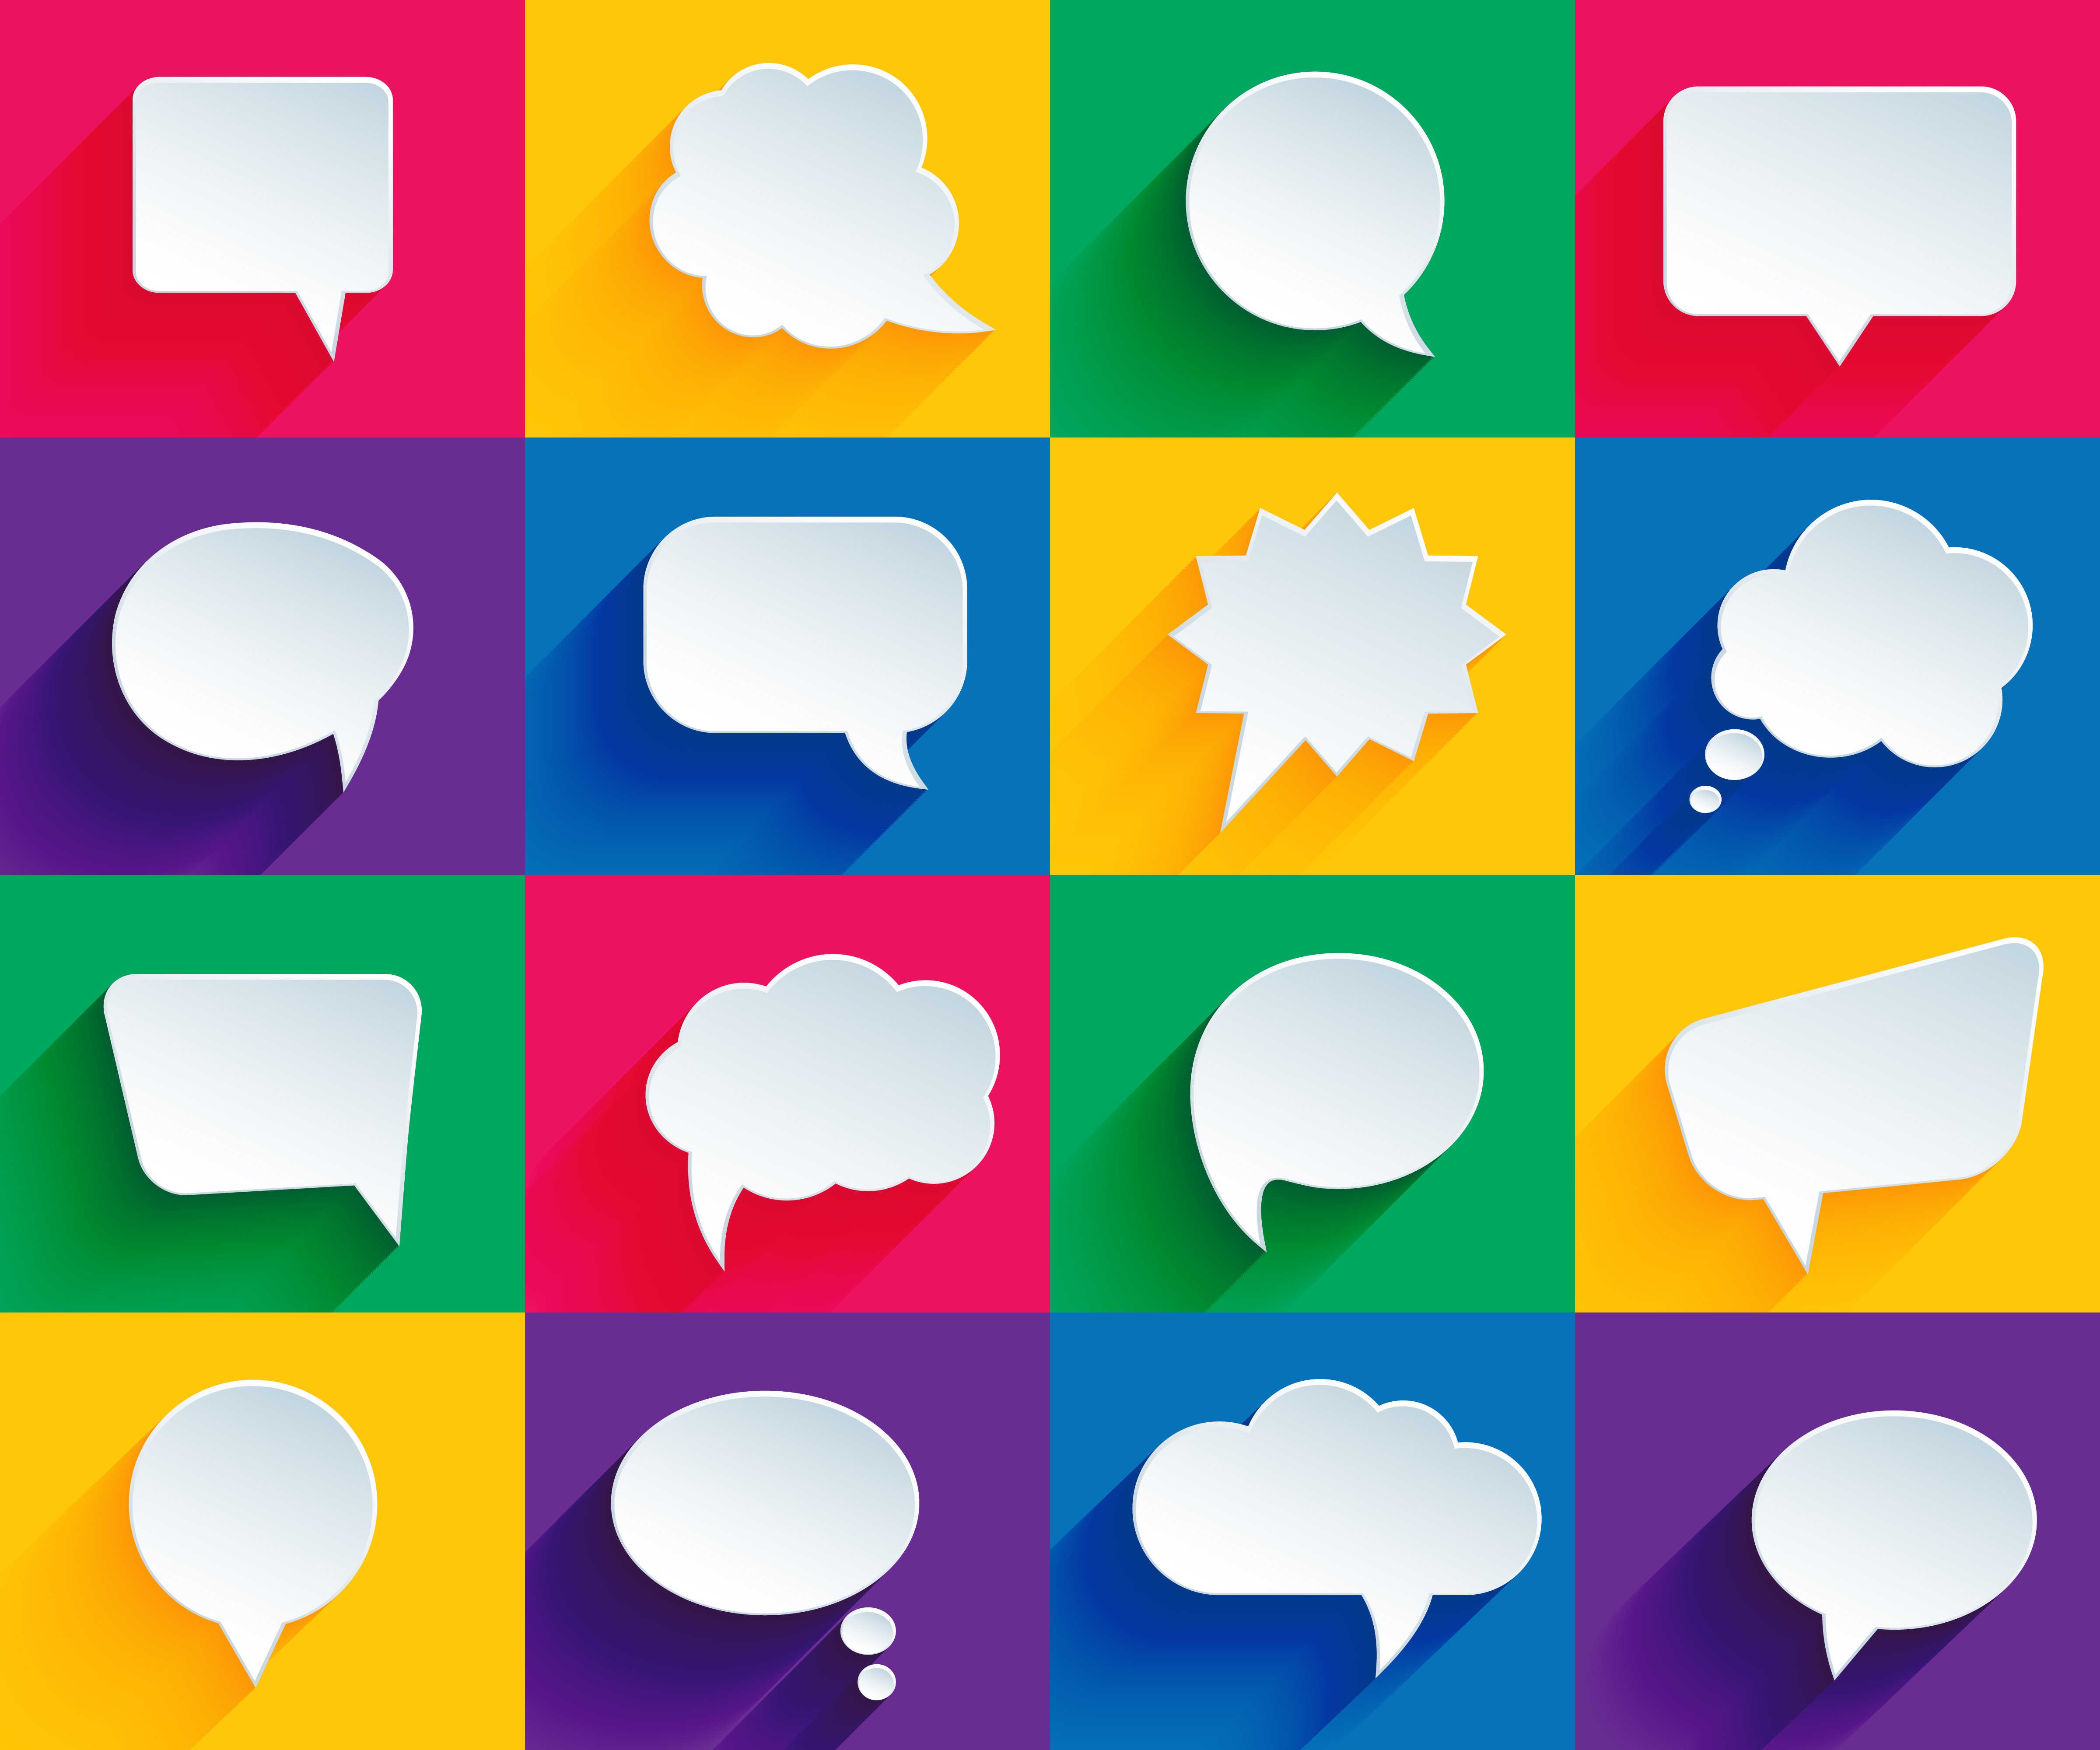 speech bubbles on color backgrounds